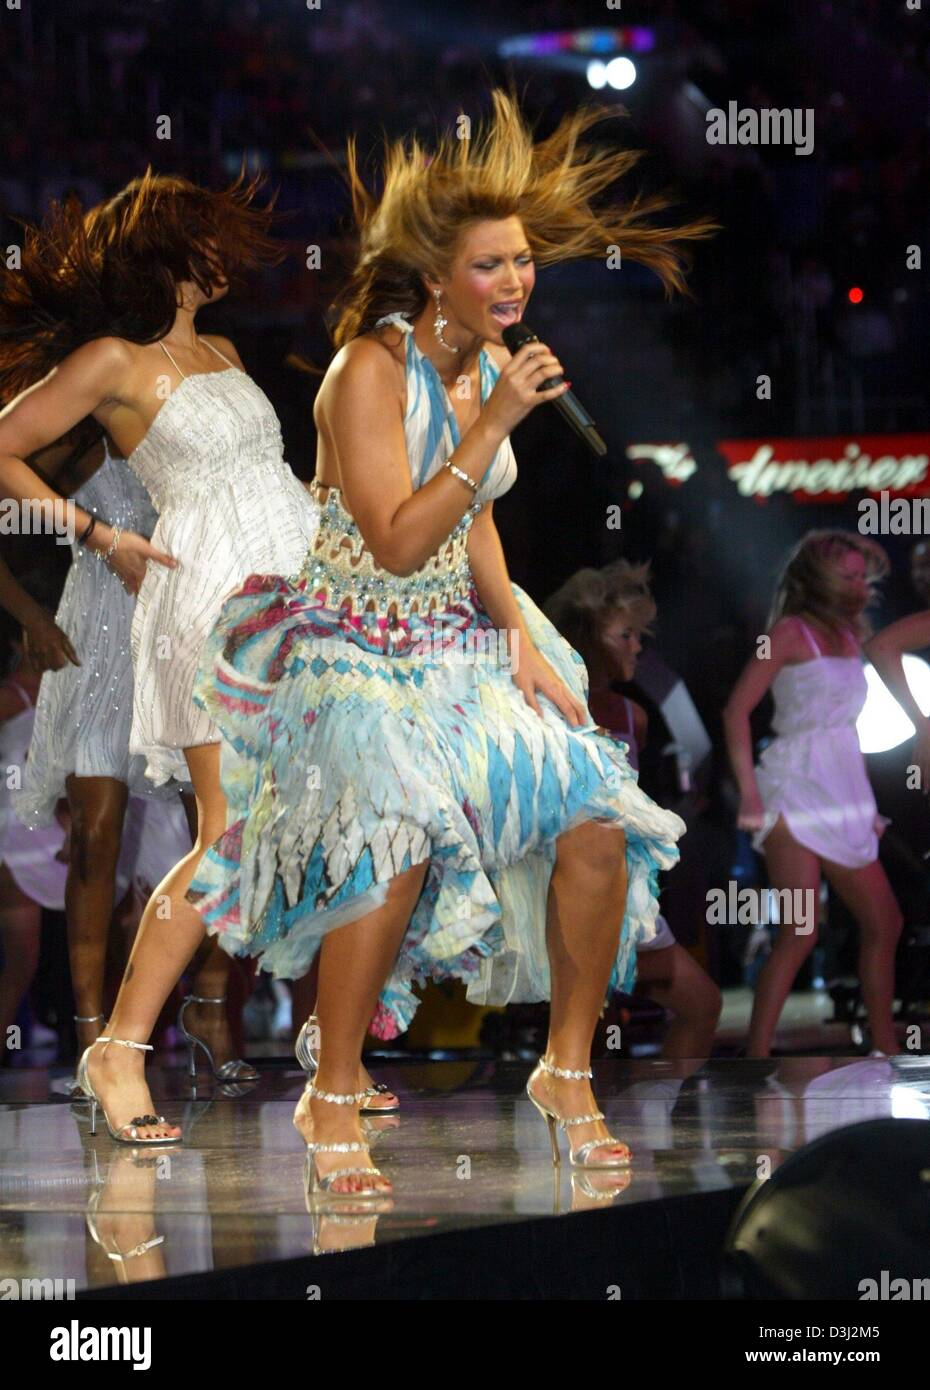 e63b79841773 (dpa) - US singer Beyonce Knowles performs during the half-time break of